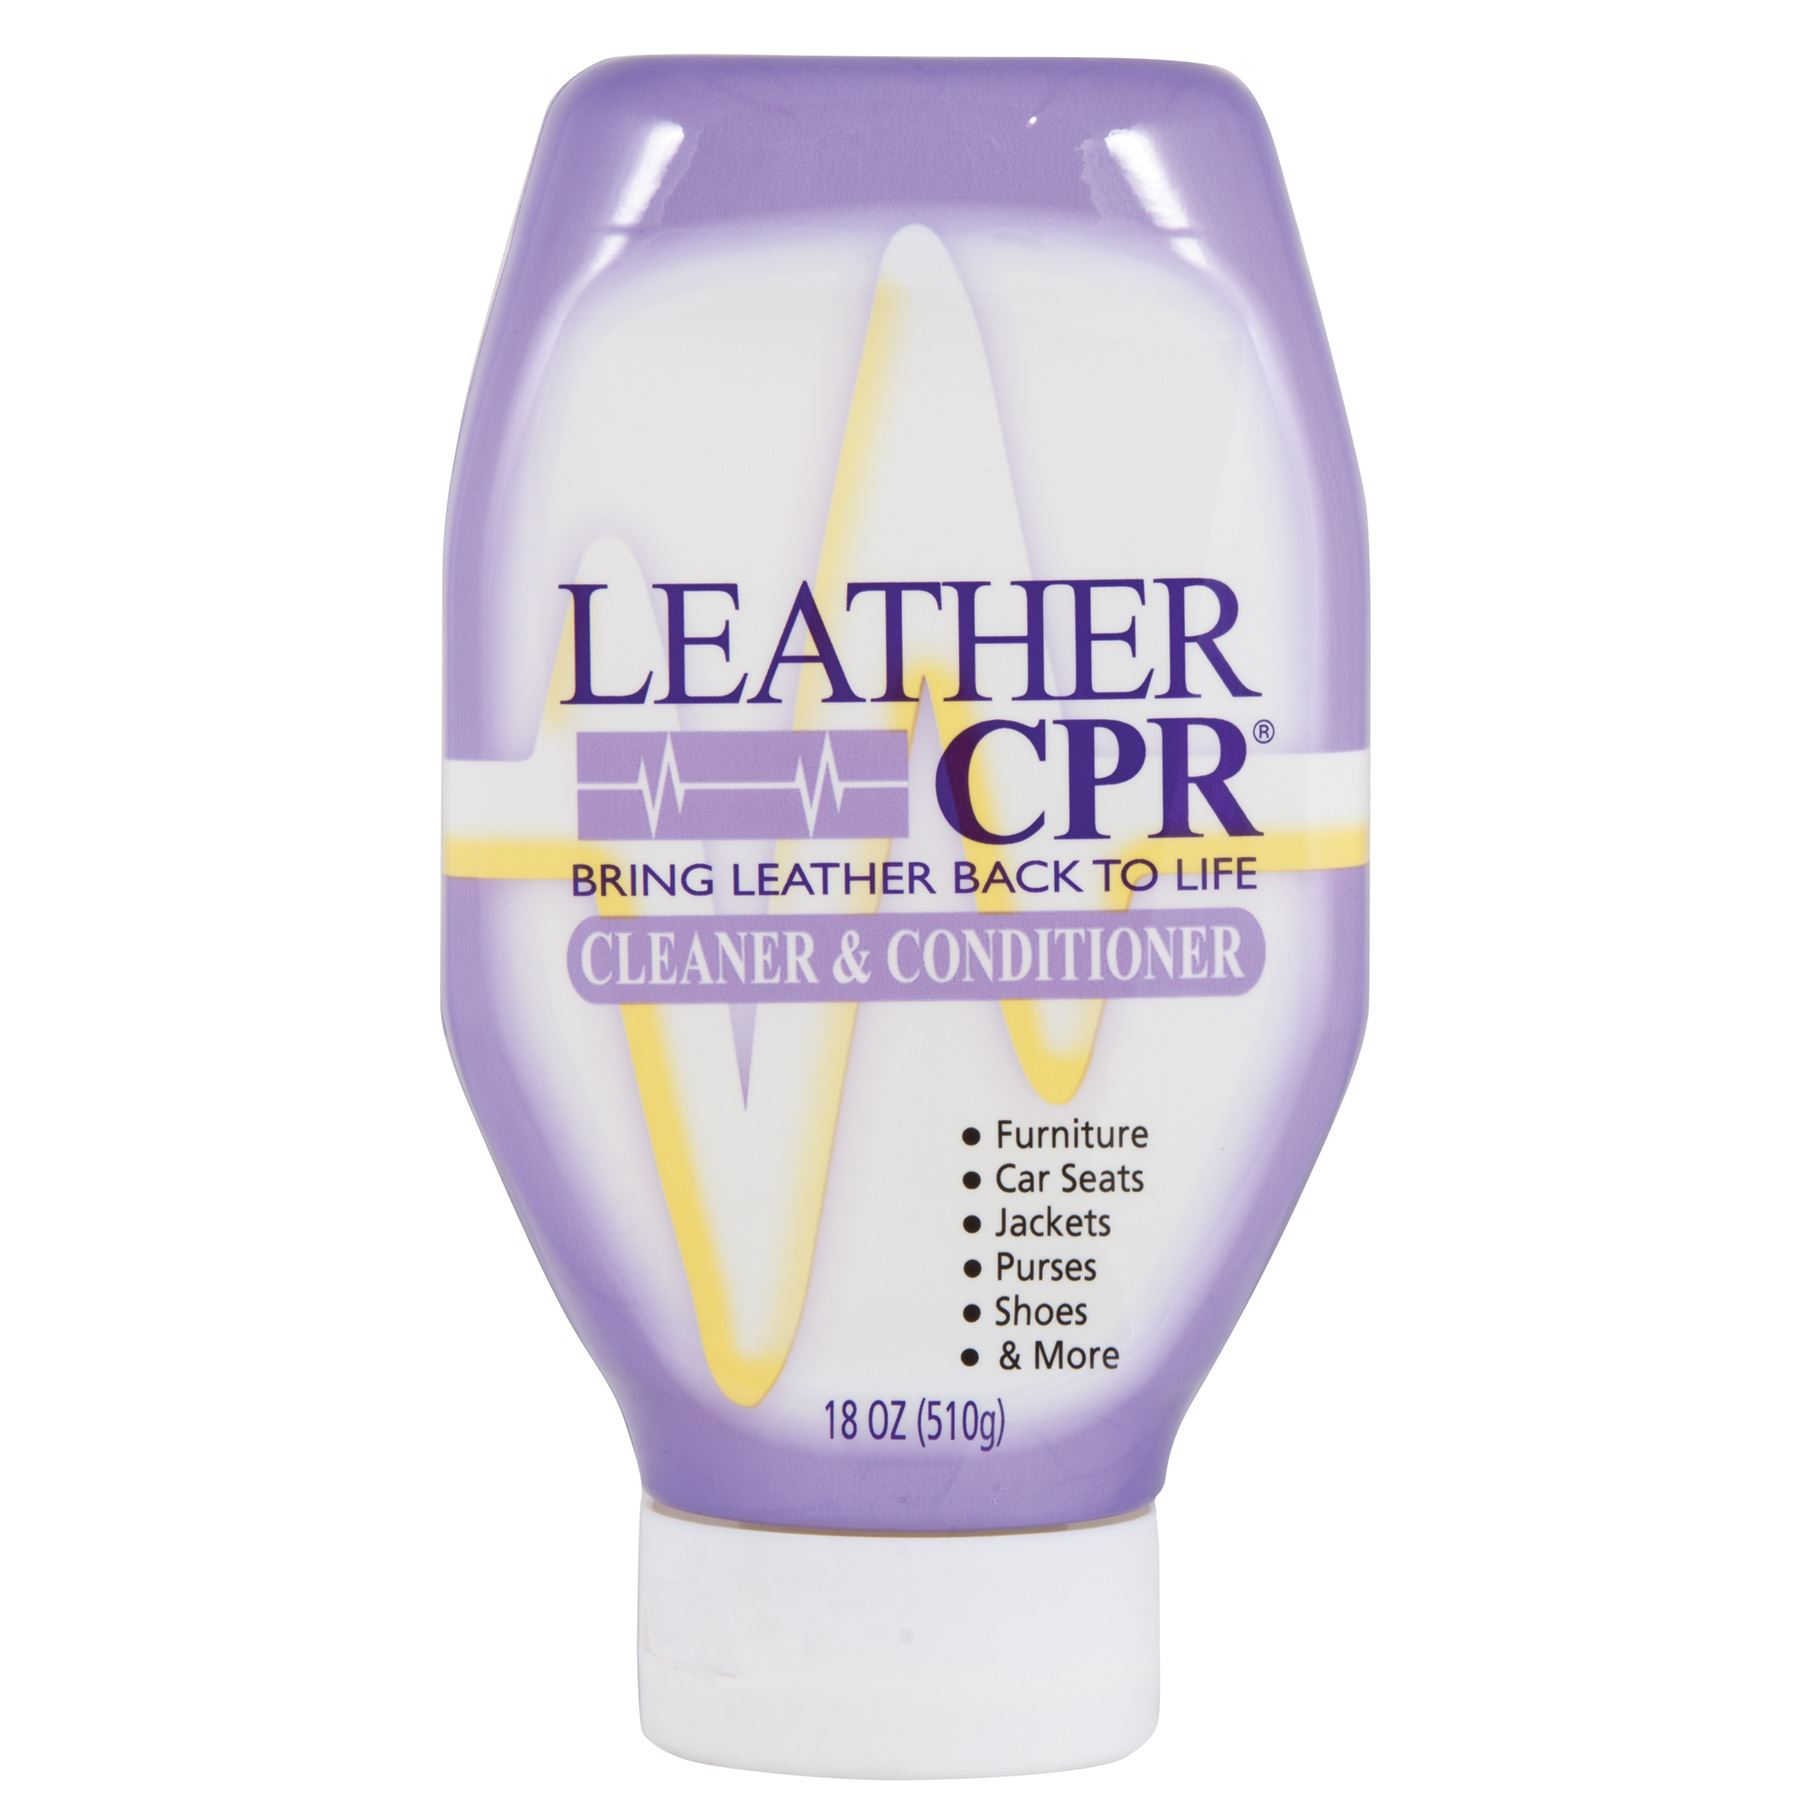 Leather CPR Cleaner & Conditioner 18oz